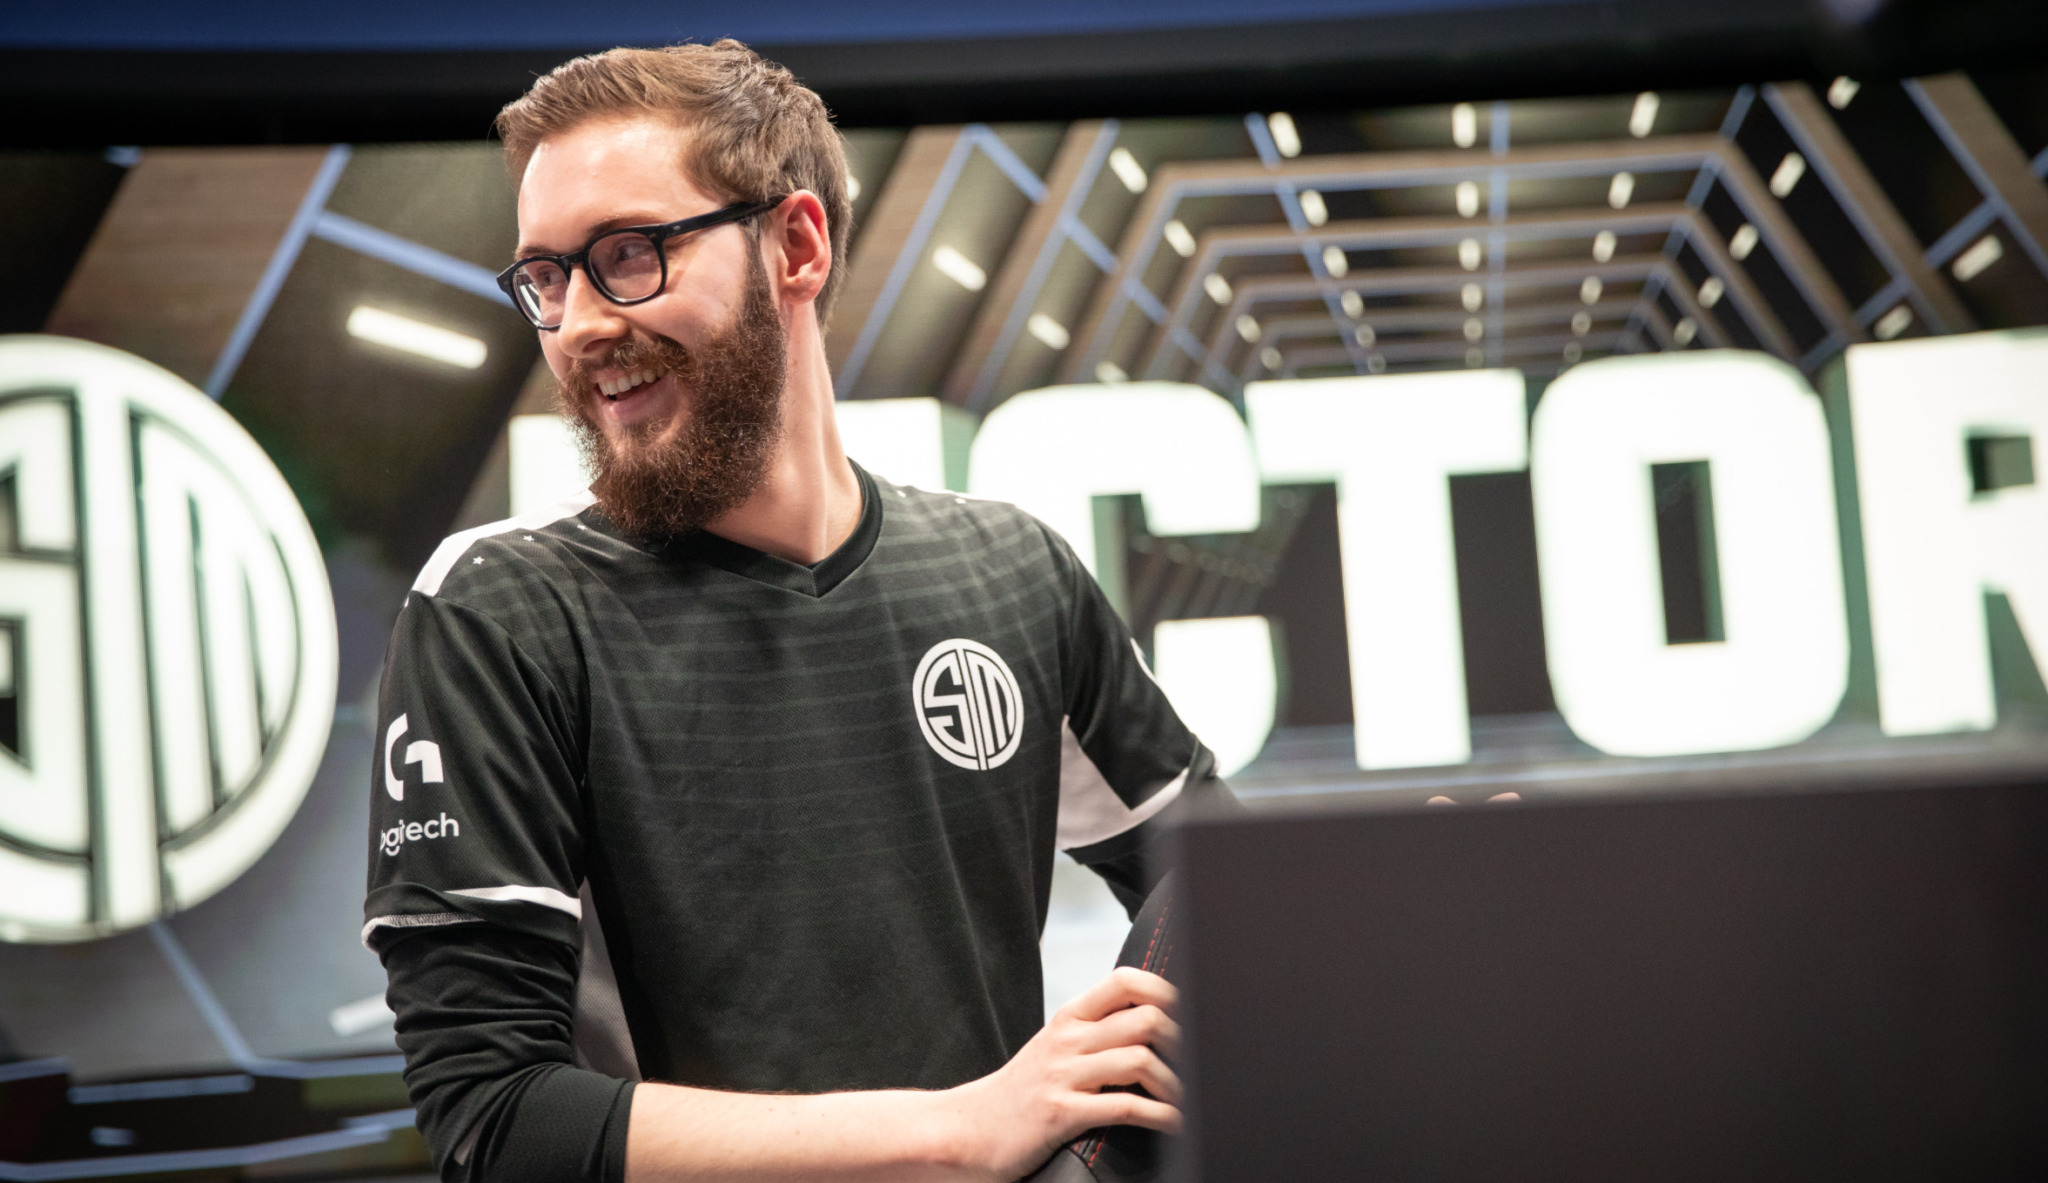 Bjergsen Retired From Professional Play To Become TSM's Head Coach For Upcoming 2021 Season